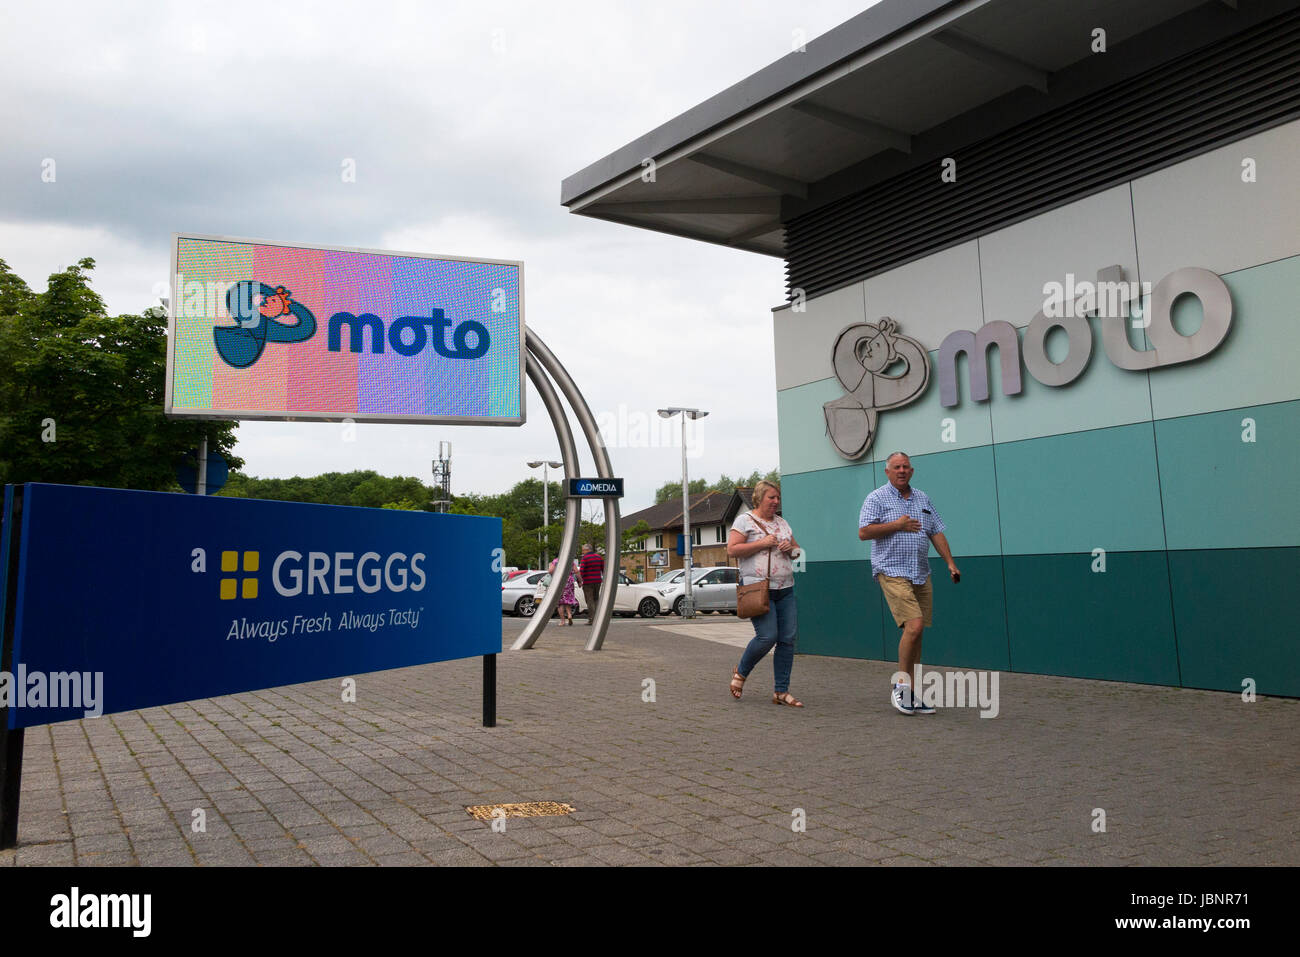 Cherwell Valley Motorway Services Moto Services Ltd – northbound – Cherwell Valley Motorway Services Area, Northampton - Stock Image